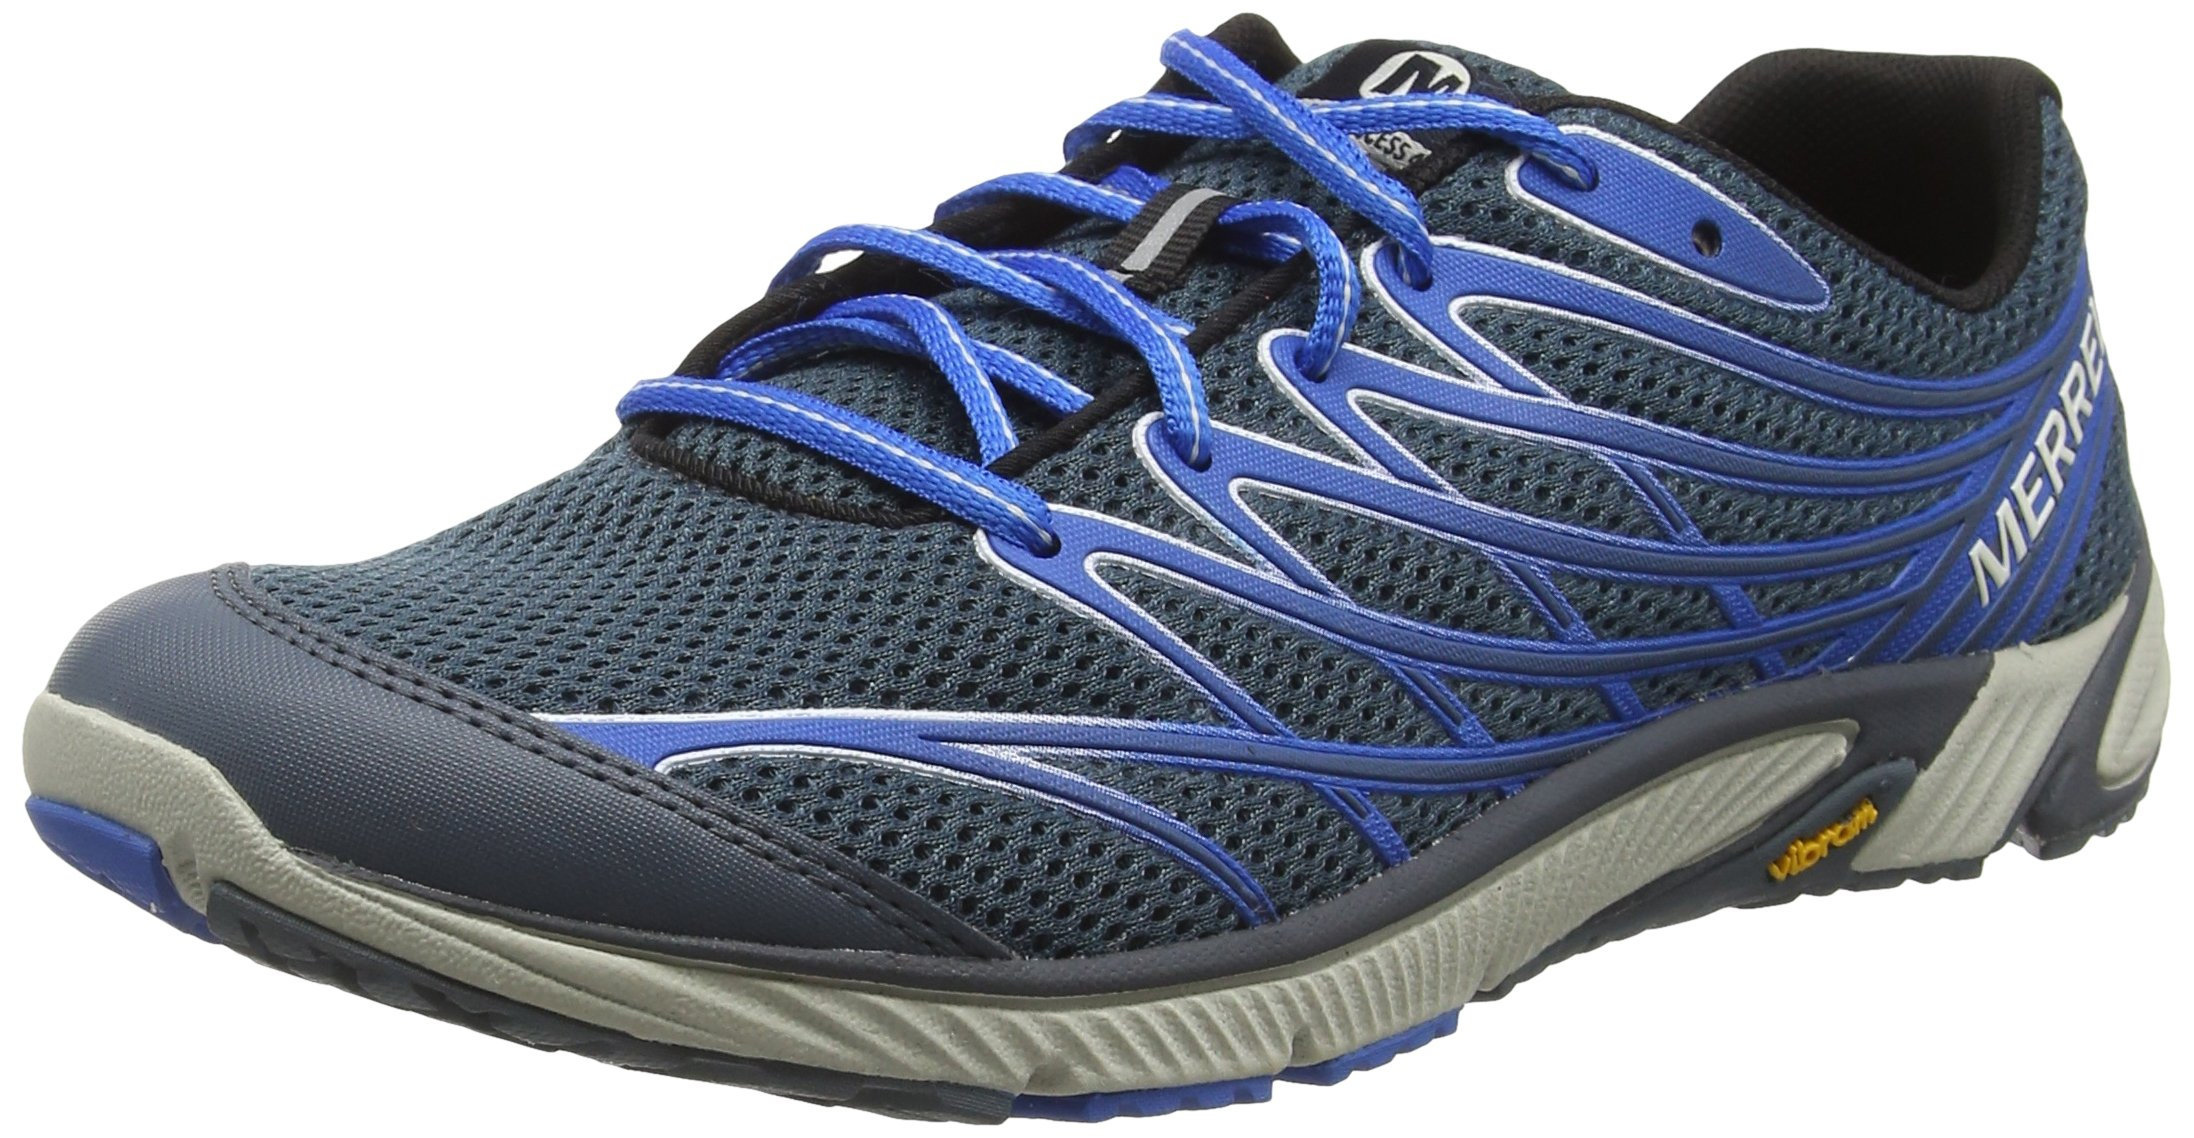 Merrell Men's Bare Access 4 Trail Running Shoe, Dark Slate, 11 M US by Merrell